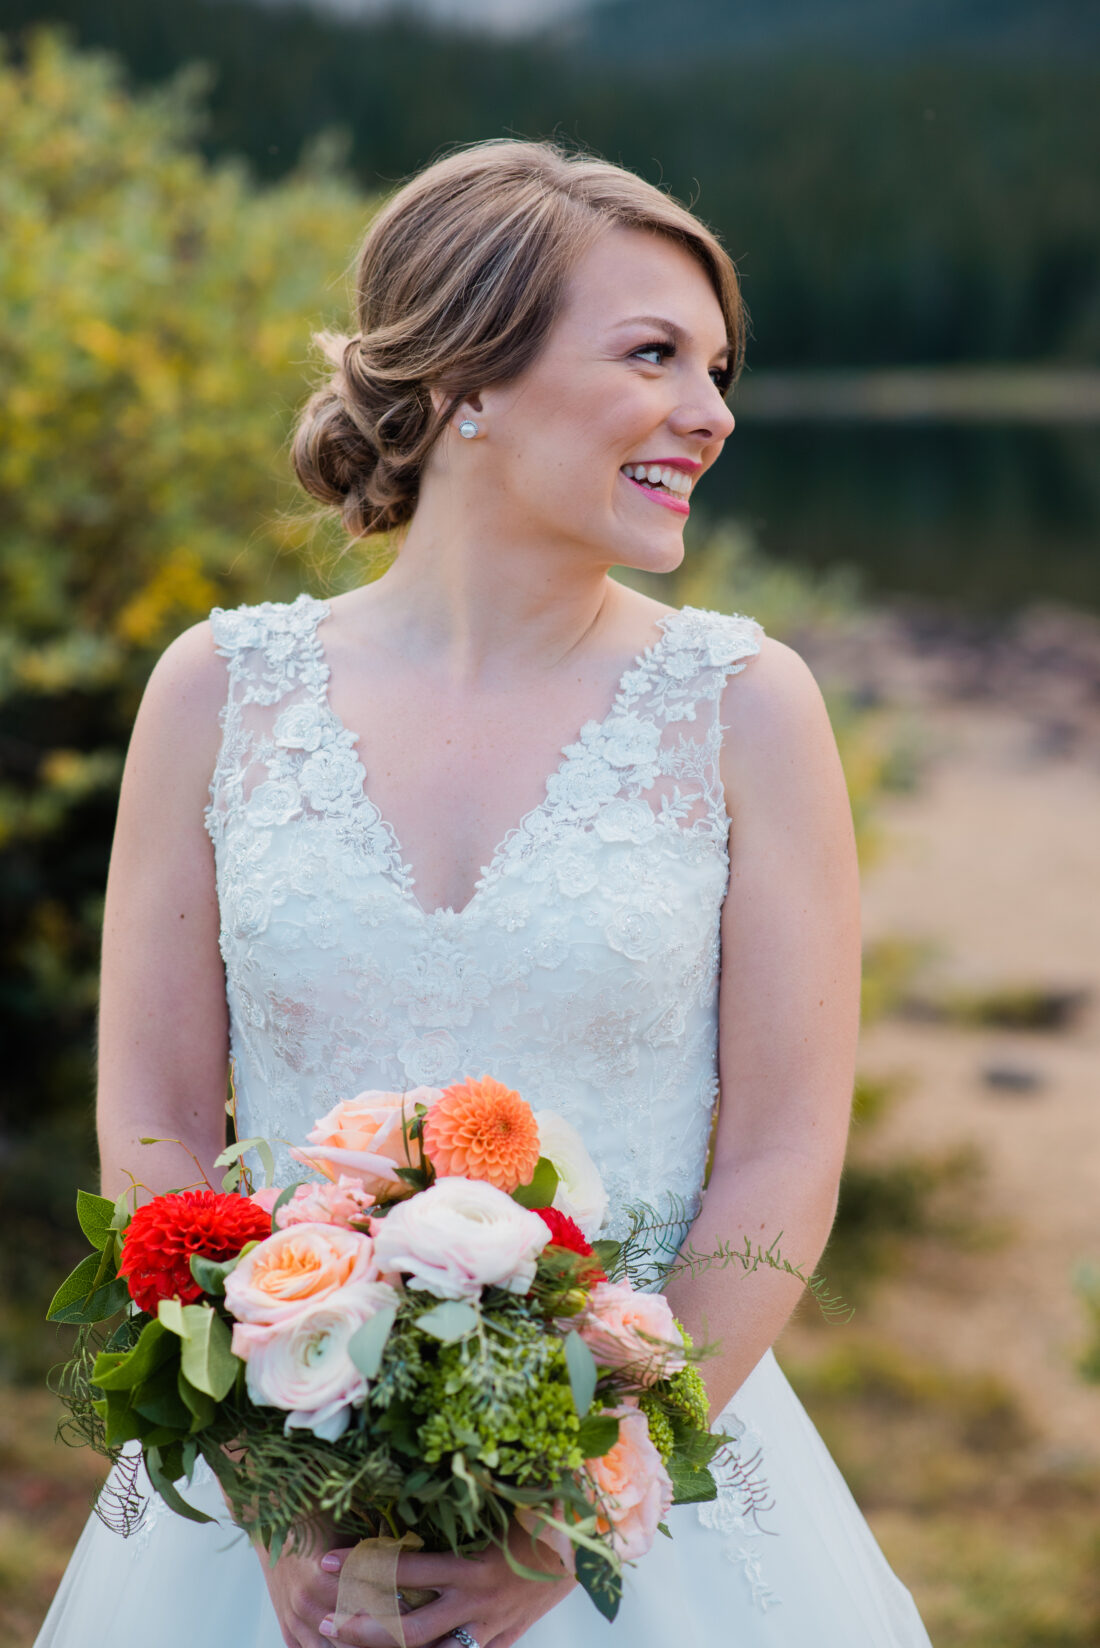 bride in lace wedding gown by the lake holding flowers